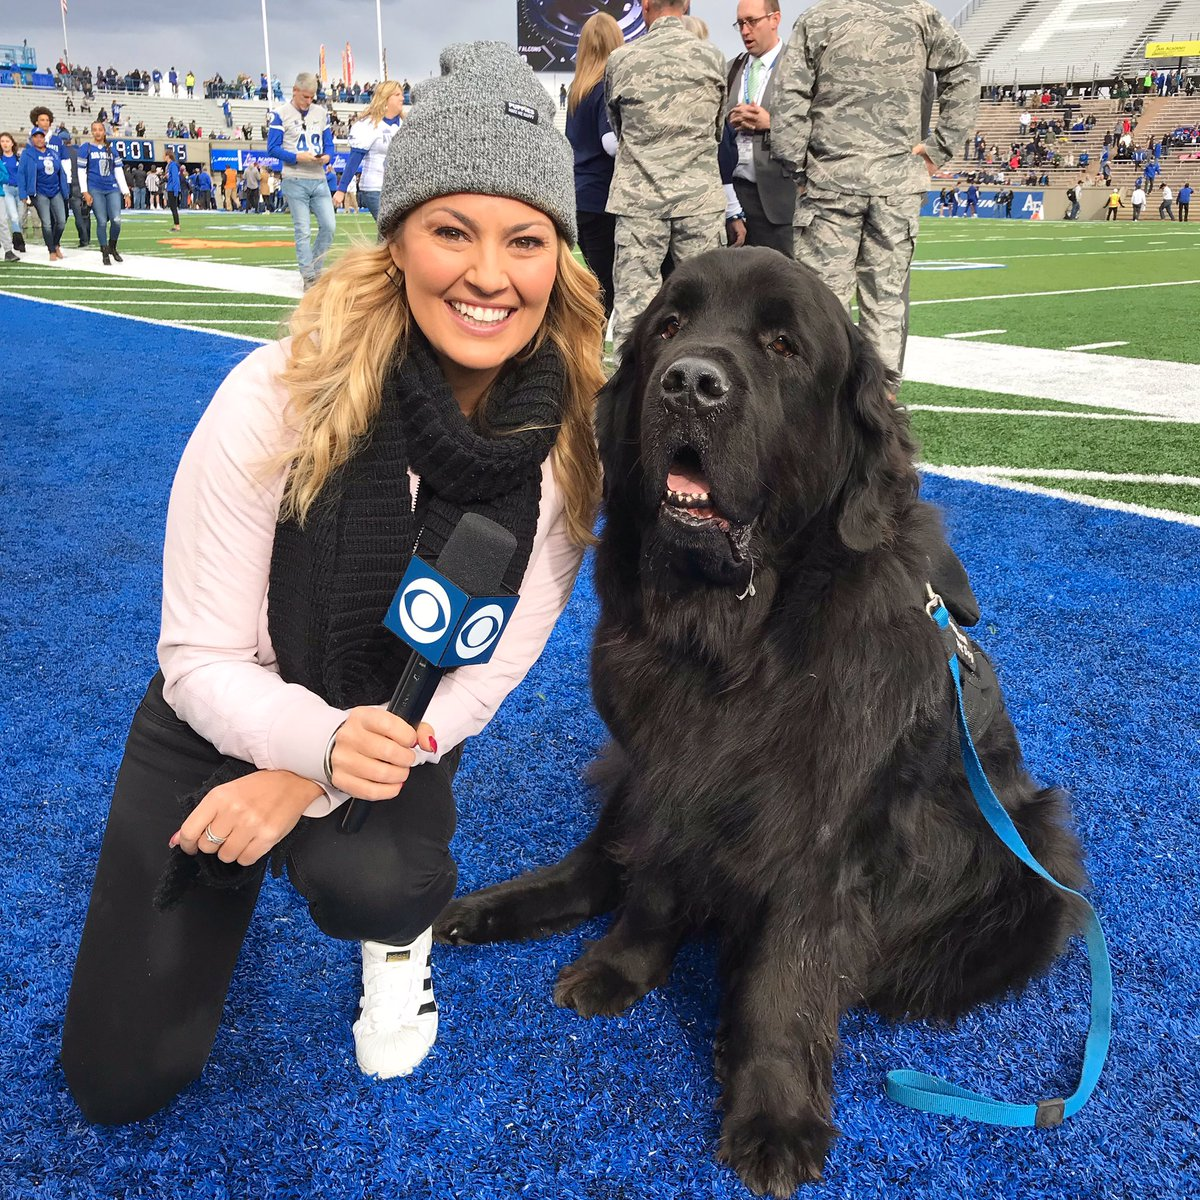 This is Cruiser. I'm very thankful for Cruiser. And my Mom. And football. Congrats on the win @AF_Football